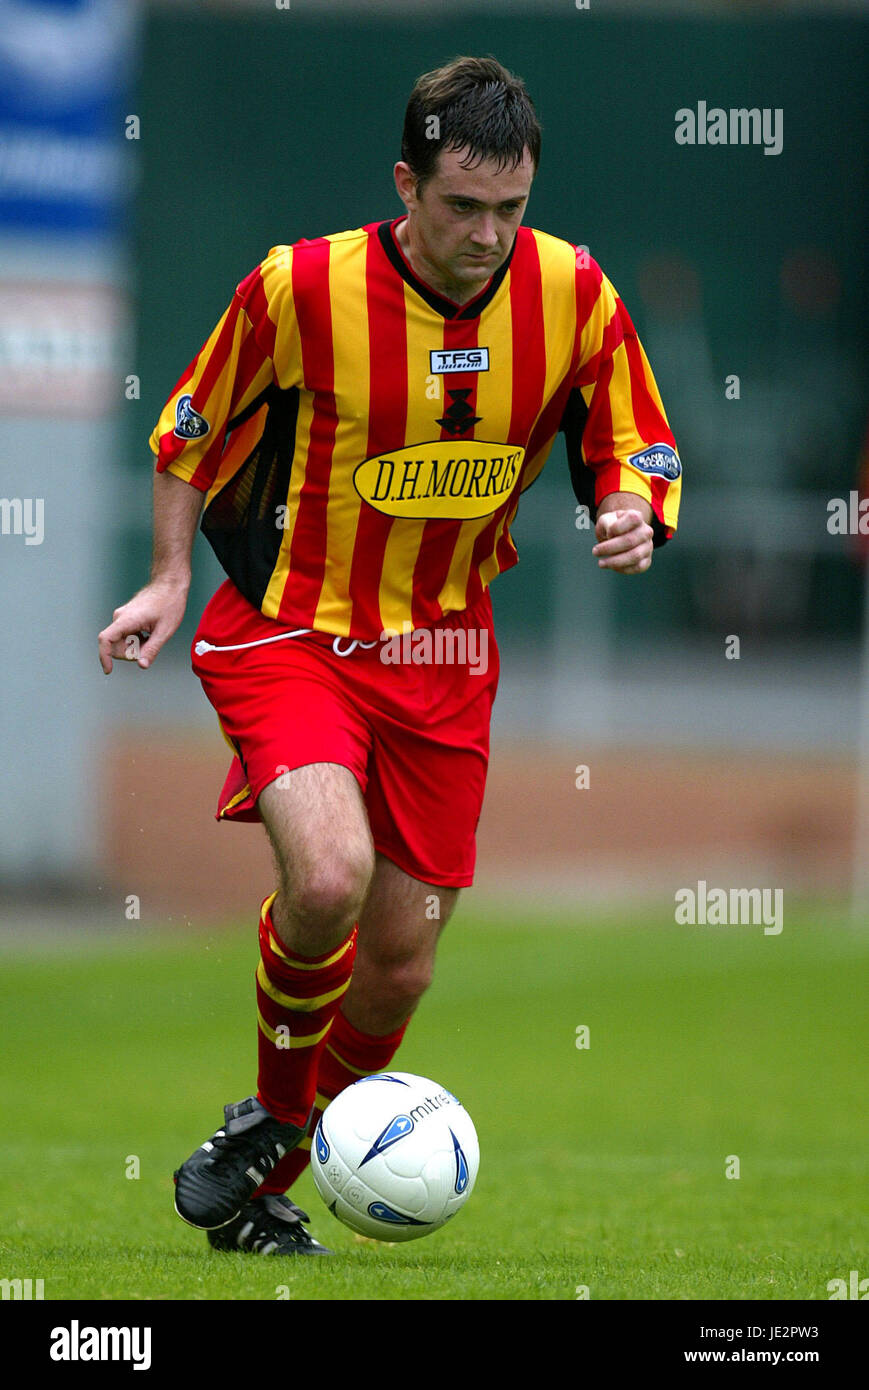 JAMES MCKINSTRY PARTICK THISTLE FC FIRHILL GLASGOW SCOTLAND 03 August 2002 - Stock Image